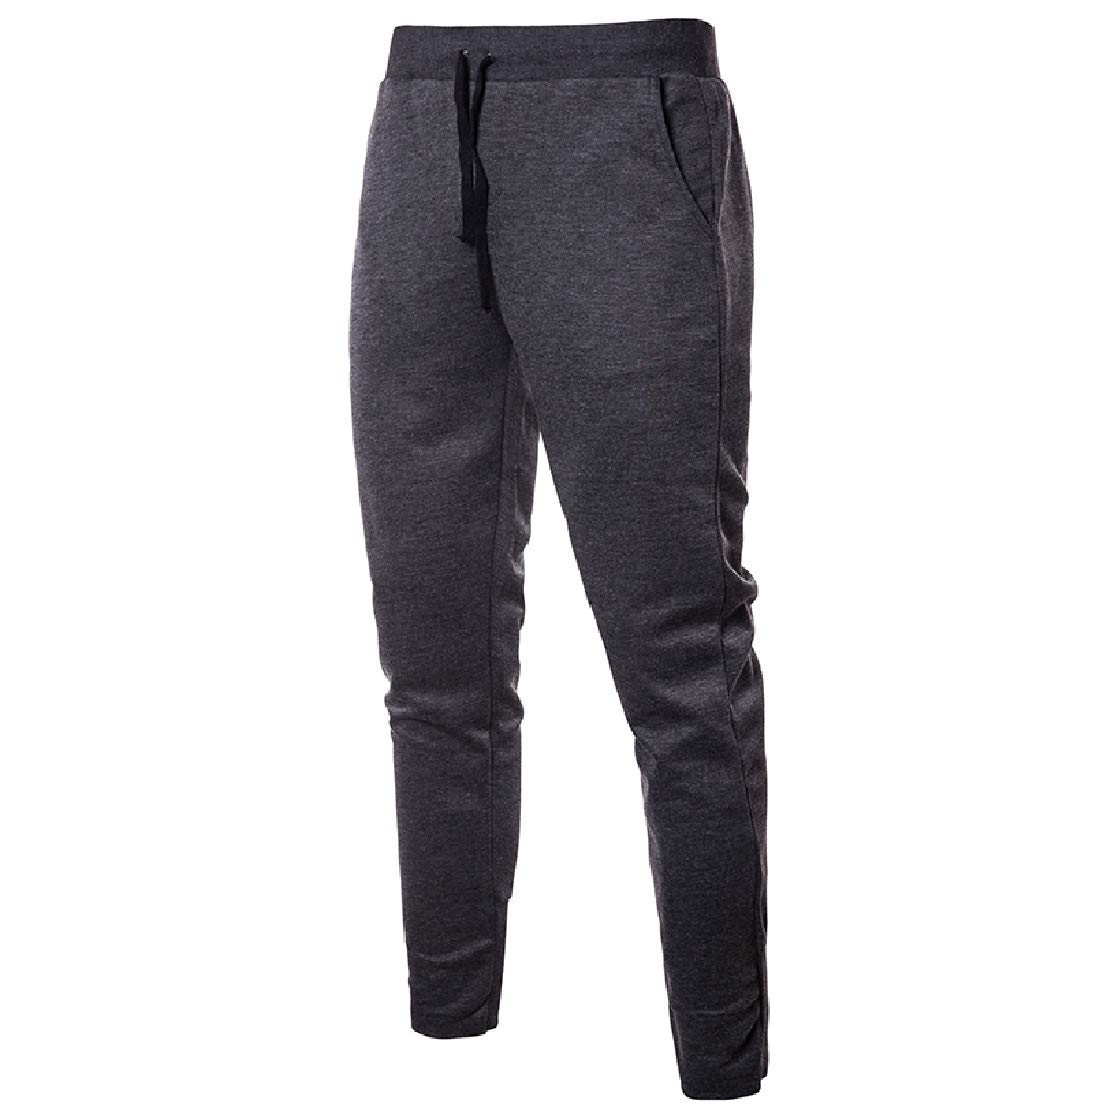 CrazyDay Mens Simple Silm Fit Hip Hop Drawstring Waist Fit Athletic Running Trousers